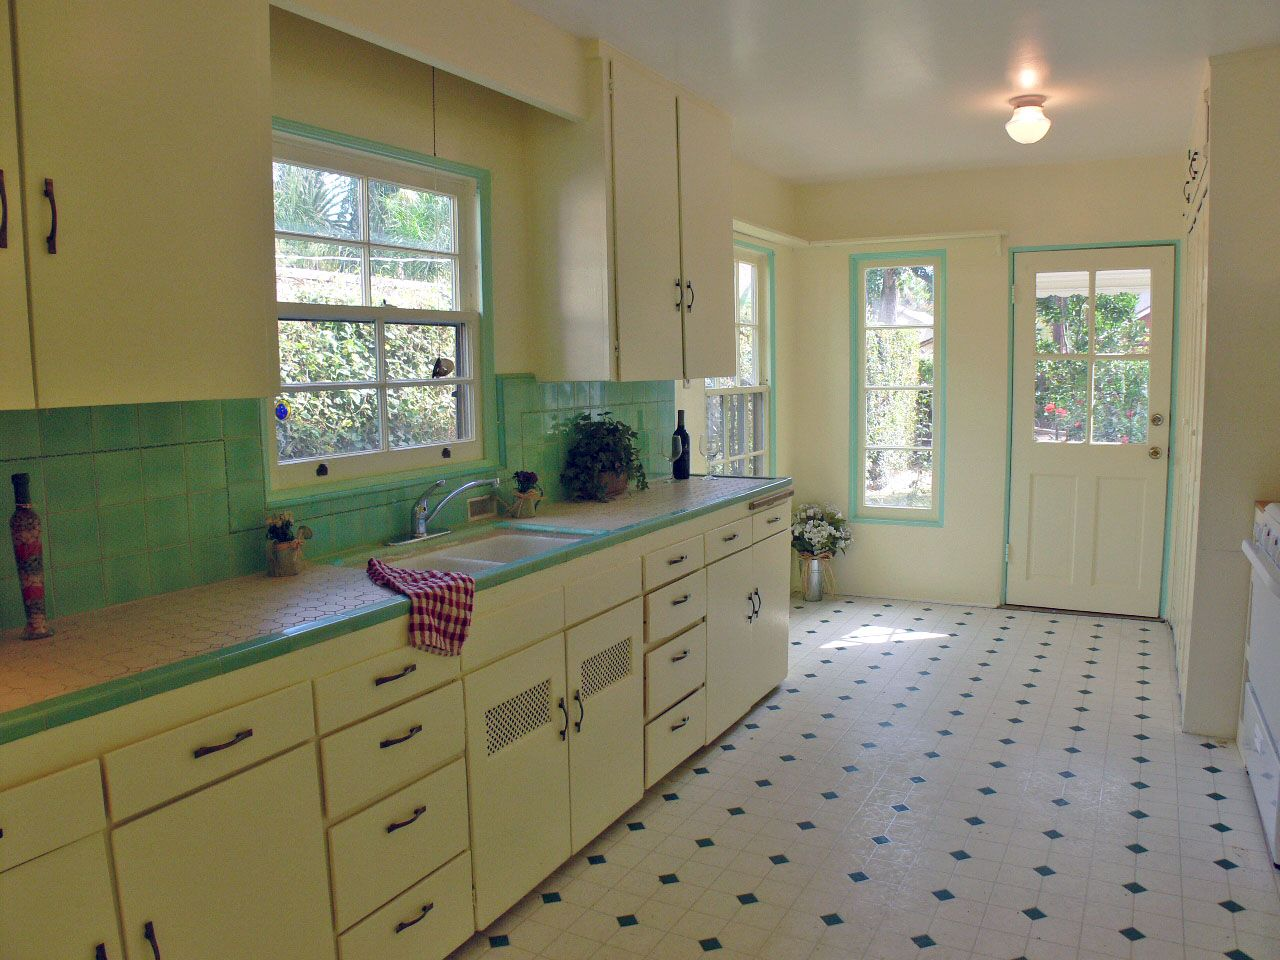 Retro Kitchen Floor 17 Best Images About 1930s To 1950s Kitchen Design On Pinterest